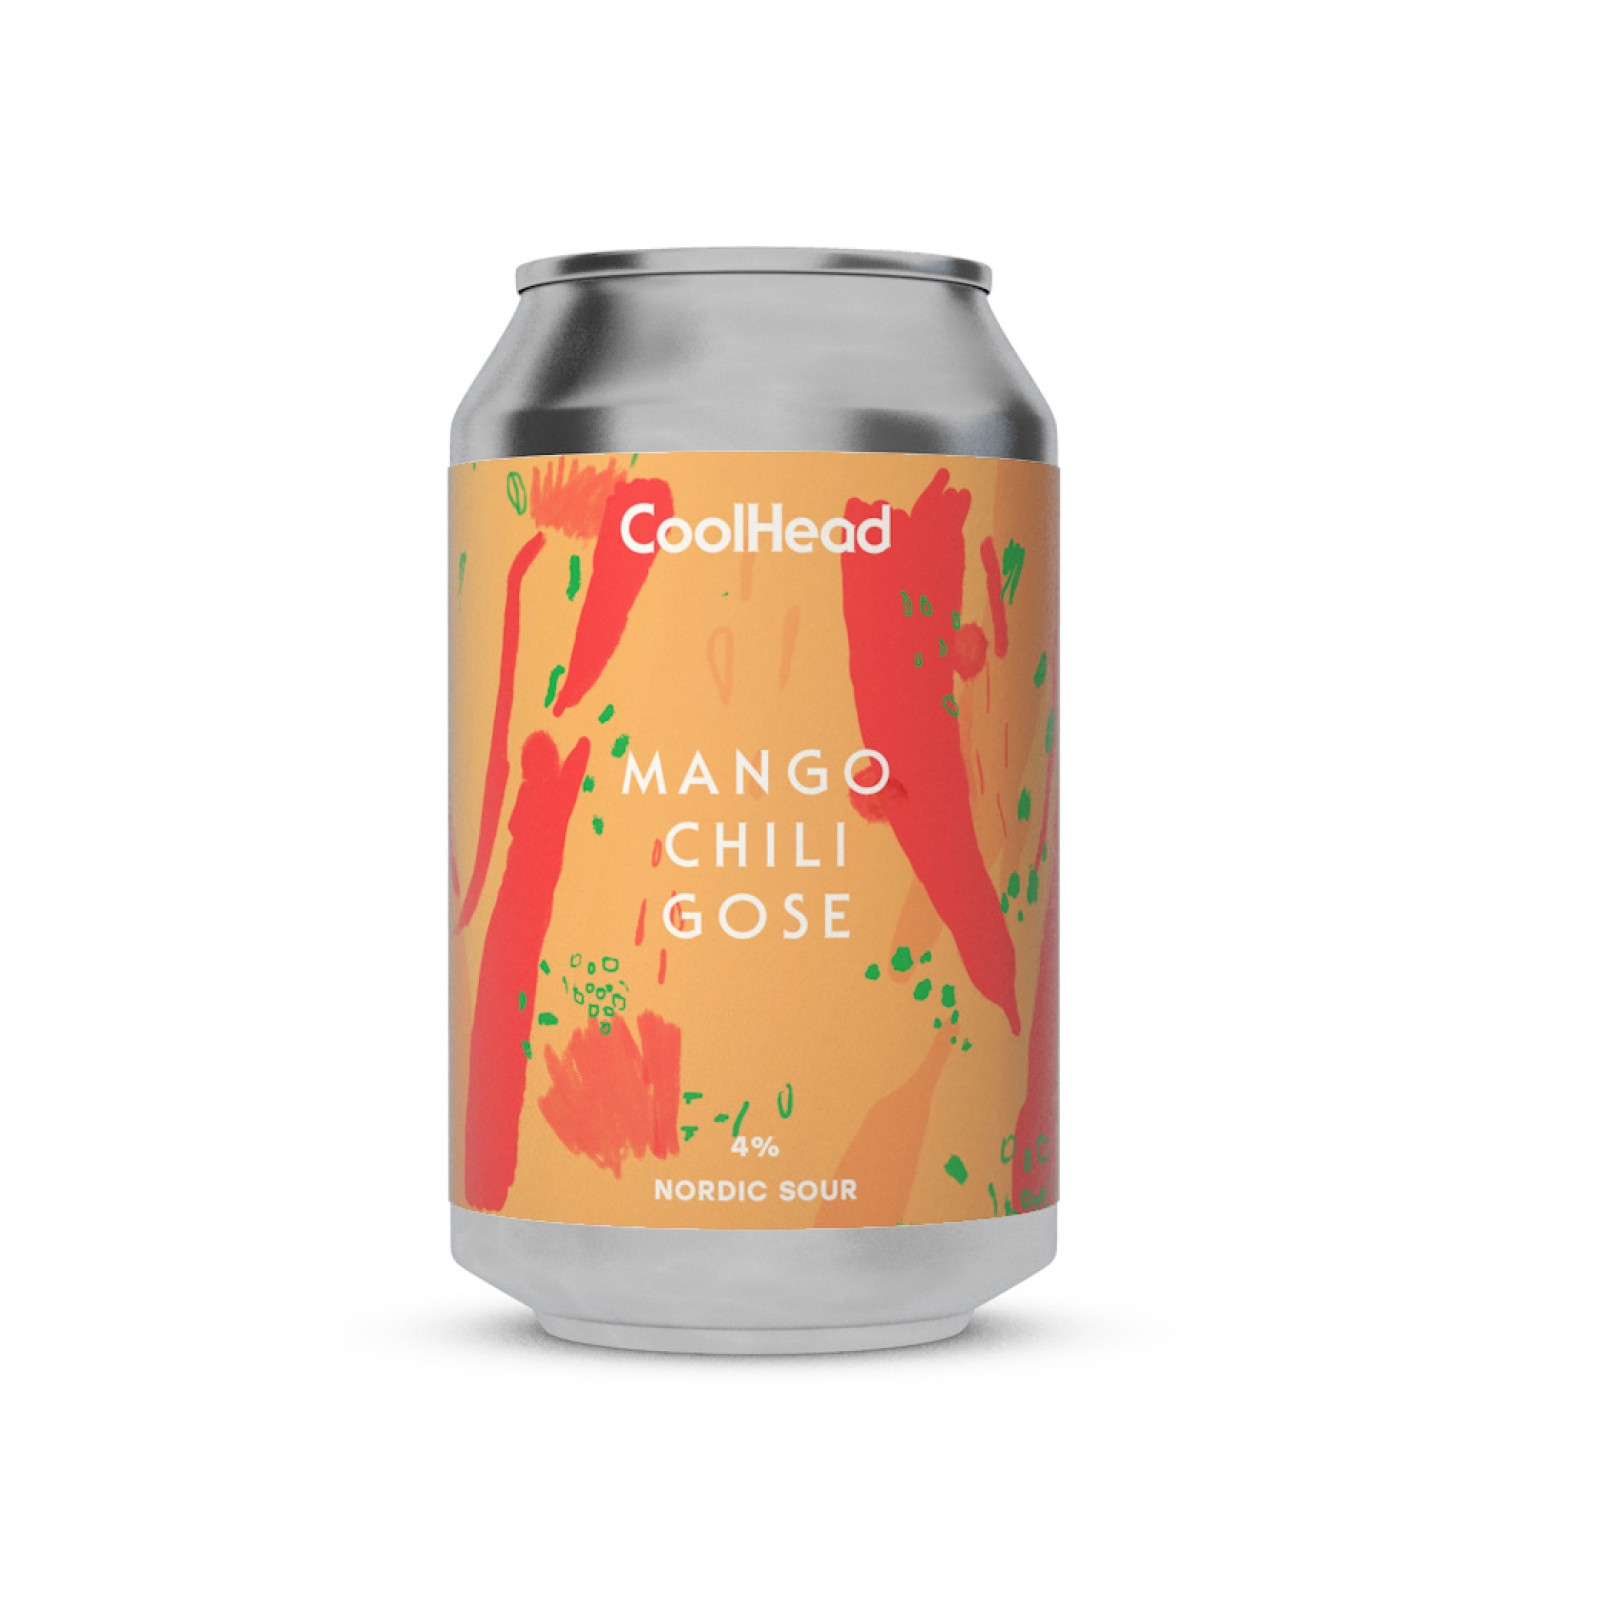 Cool Head - Chili Mango Gose Nordic Sour 5% 330 can